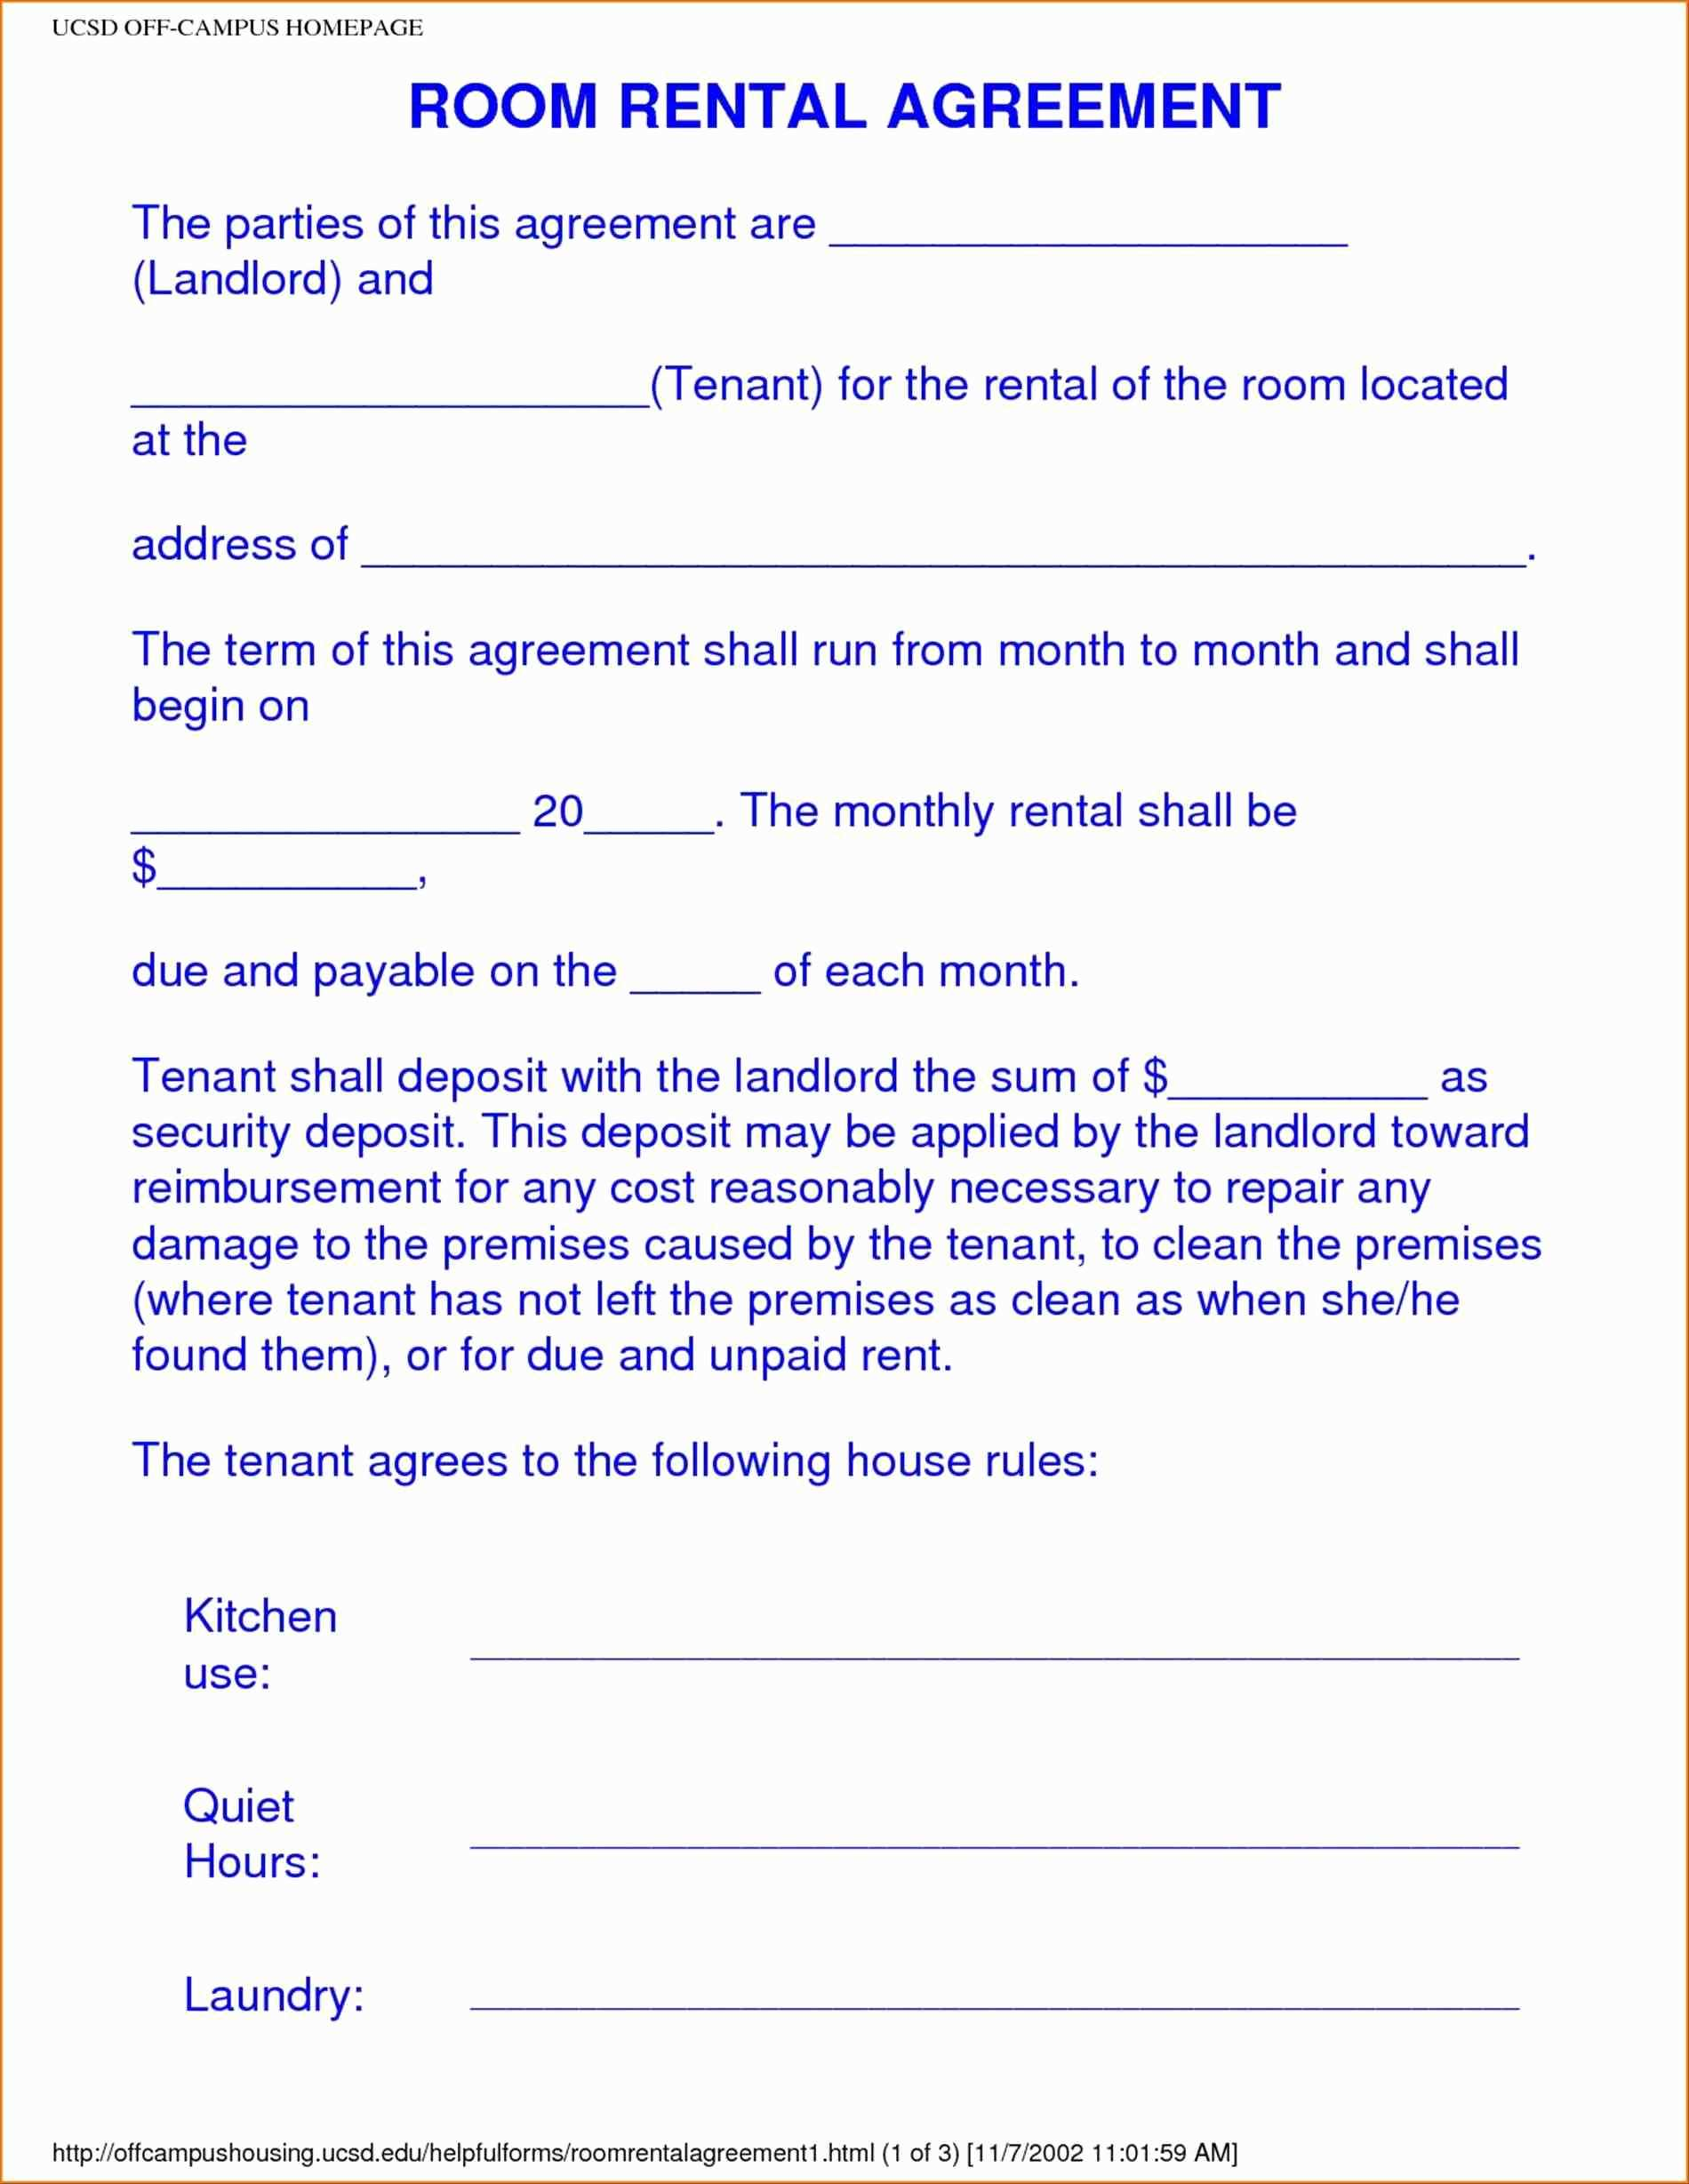 12 Best Of Simple Room Rental Agreement form Free | worddocx